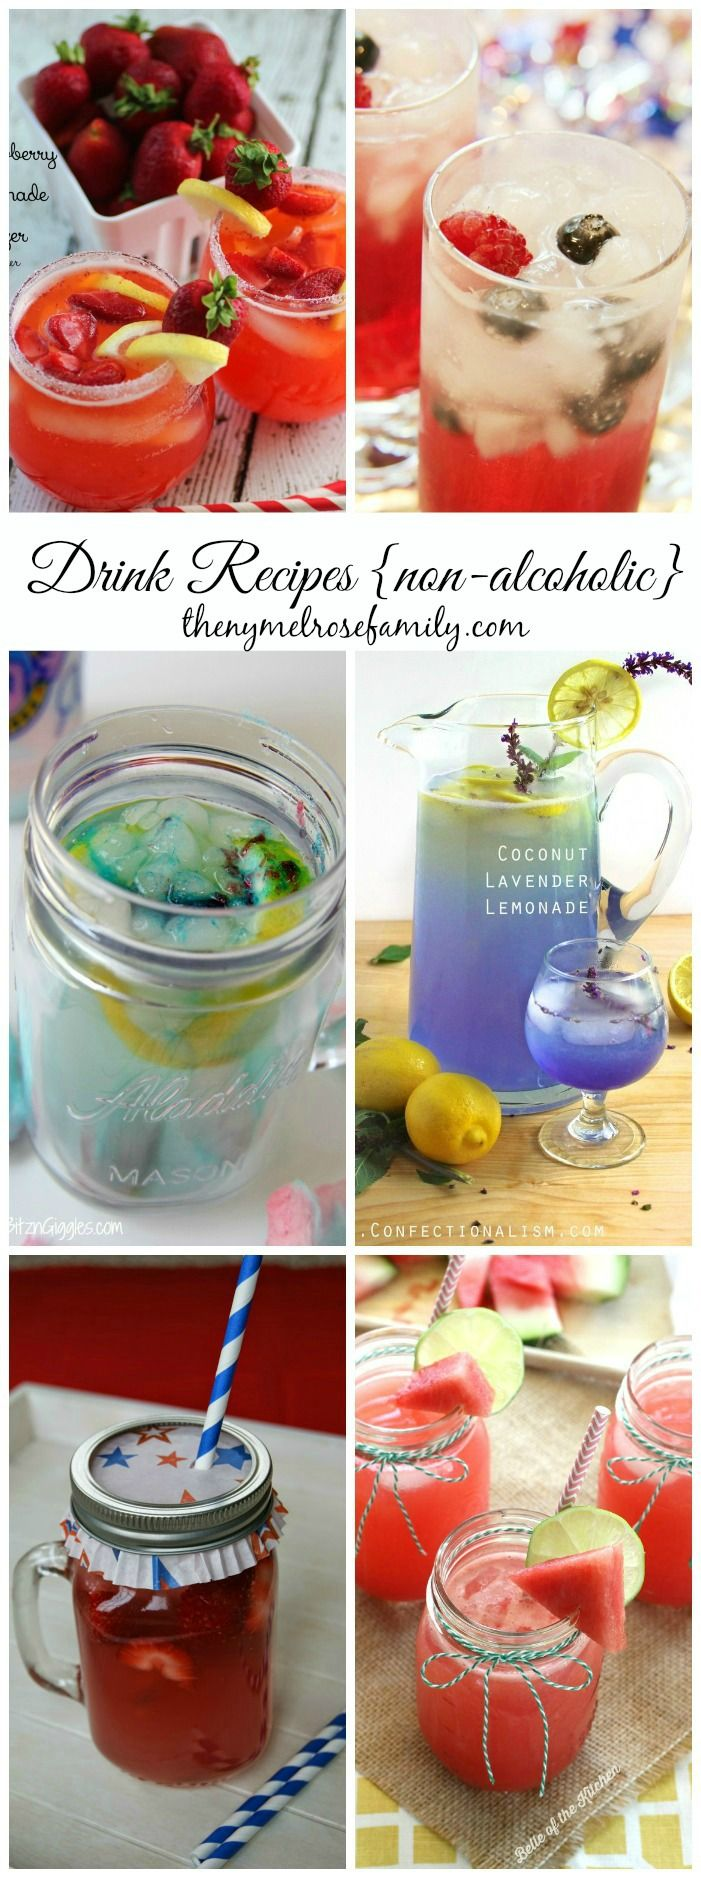 Drink Recipes {non-alcoholic} www.thenymelrosefamily.com #beverages #non_alcoholic #drinks